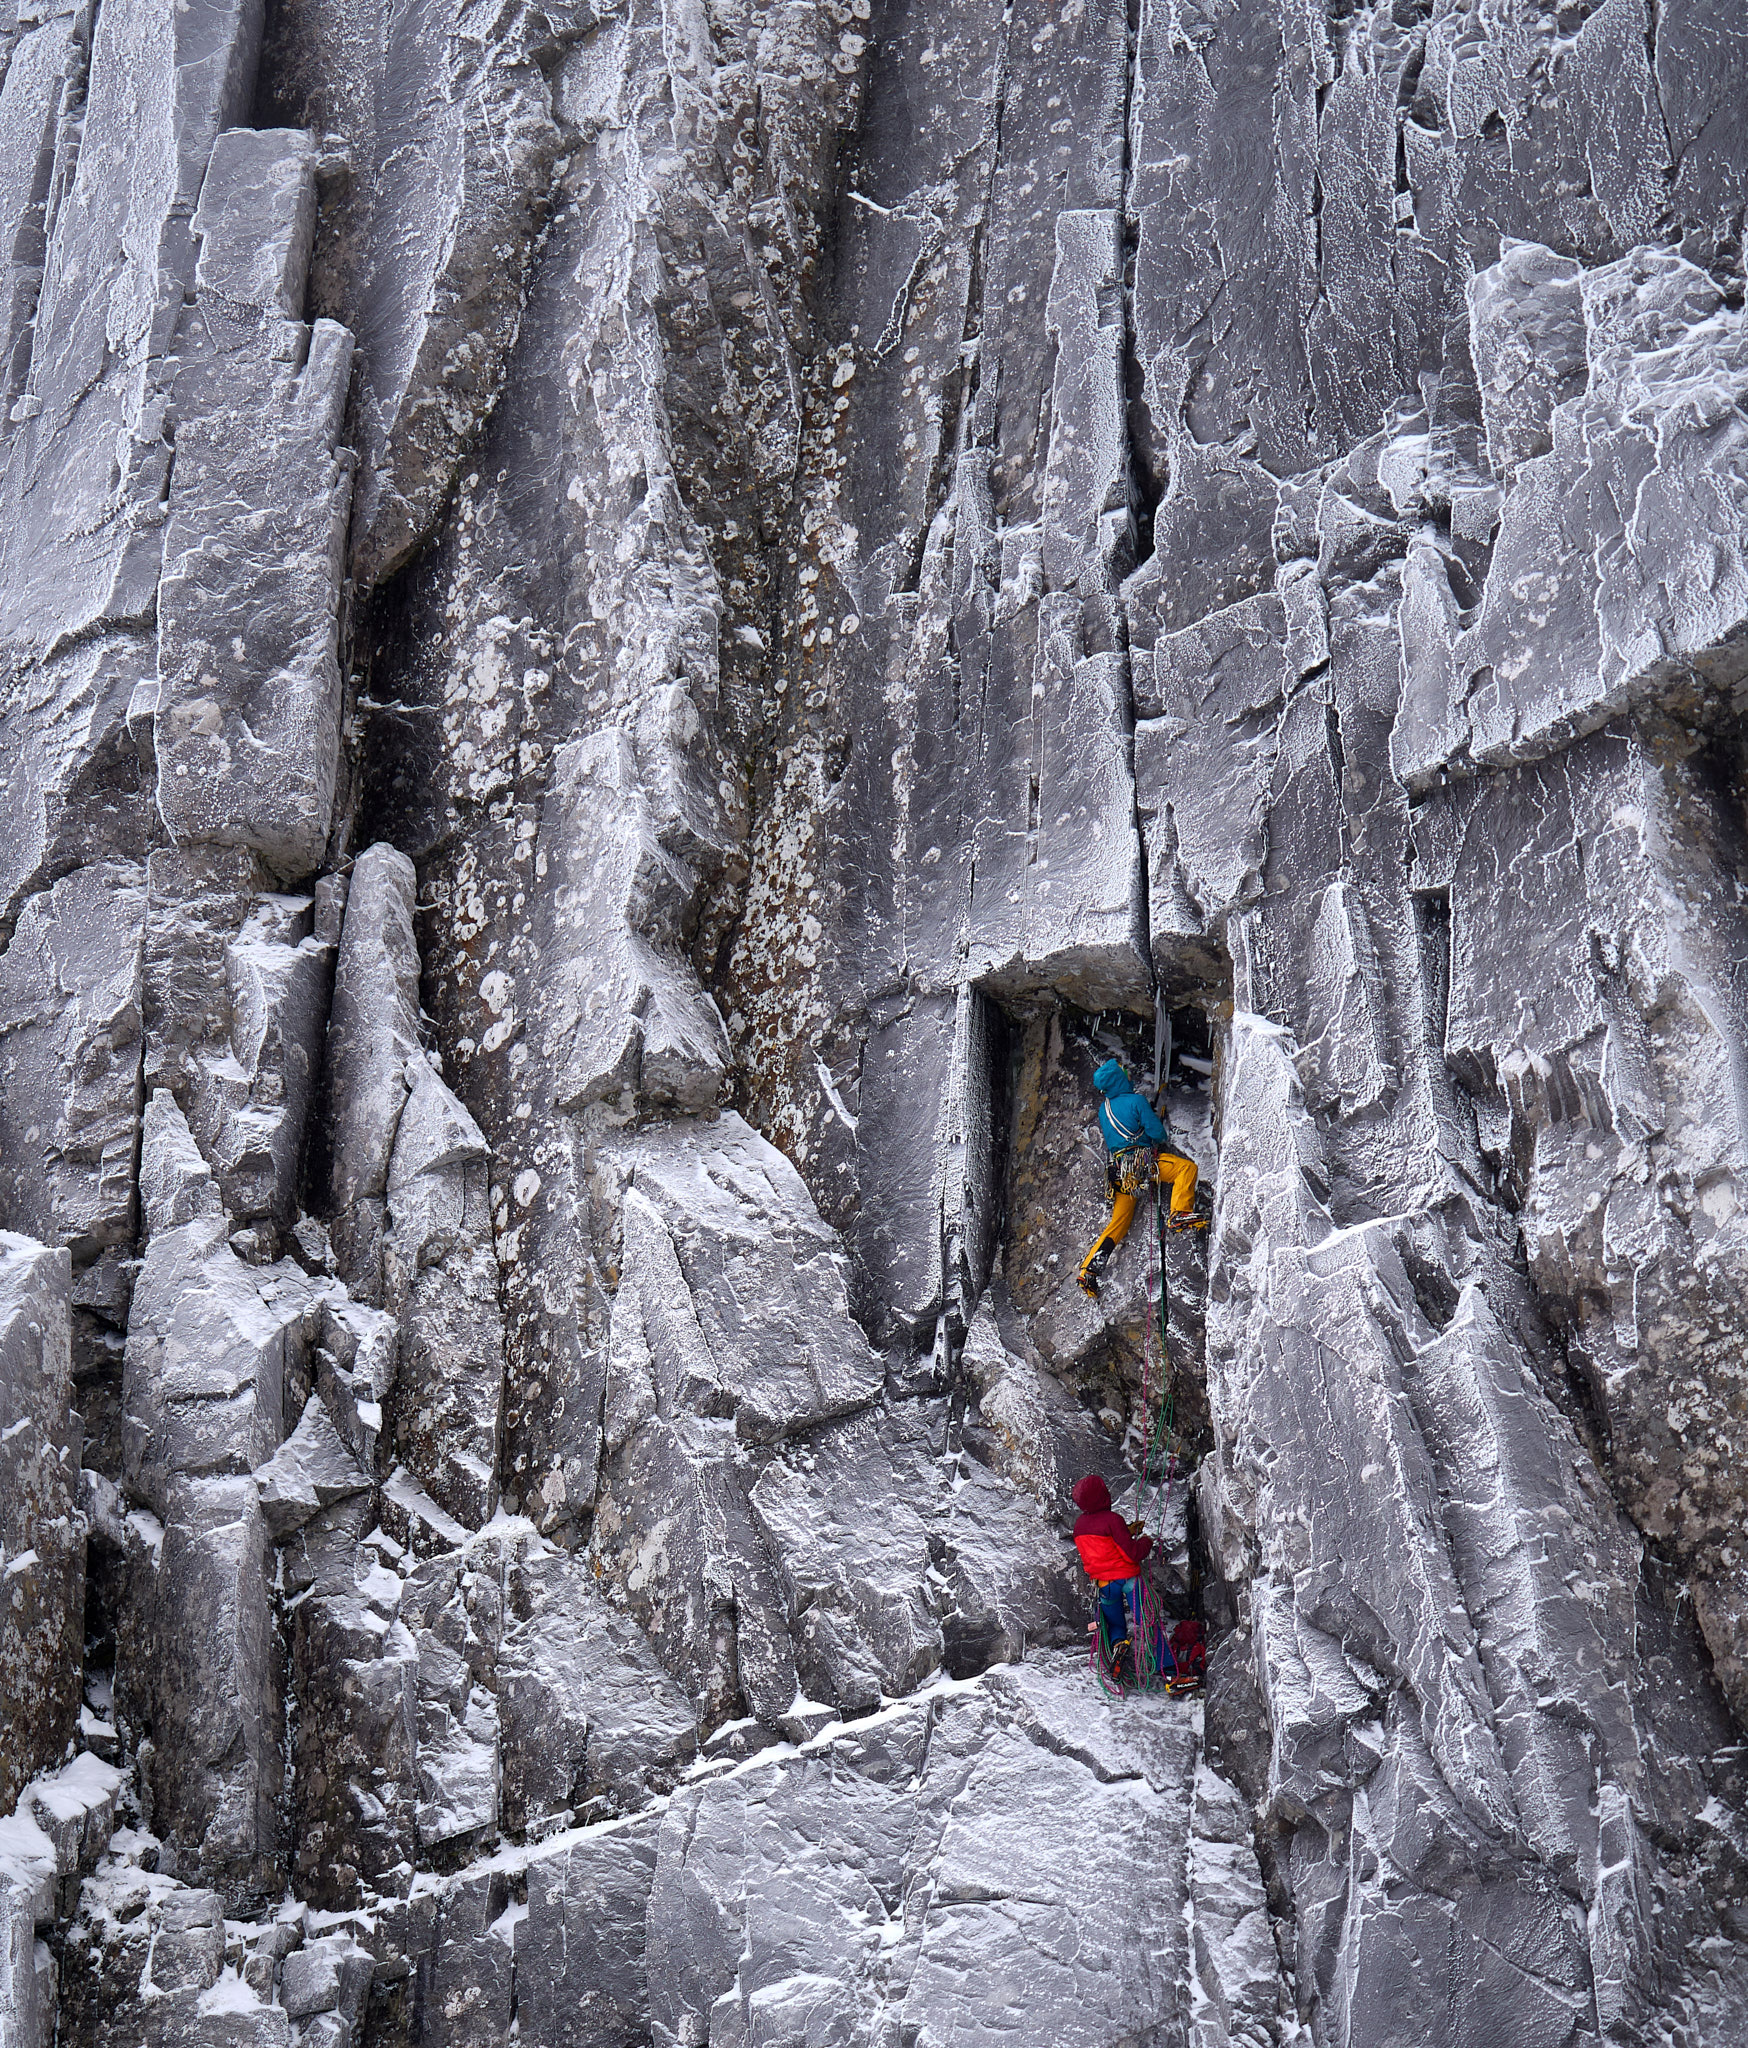 Greg Boswell leading the delicate crux second pitch of the route